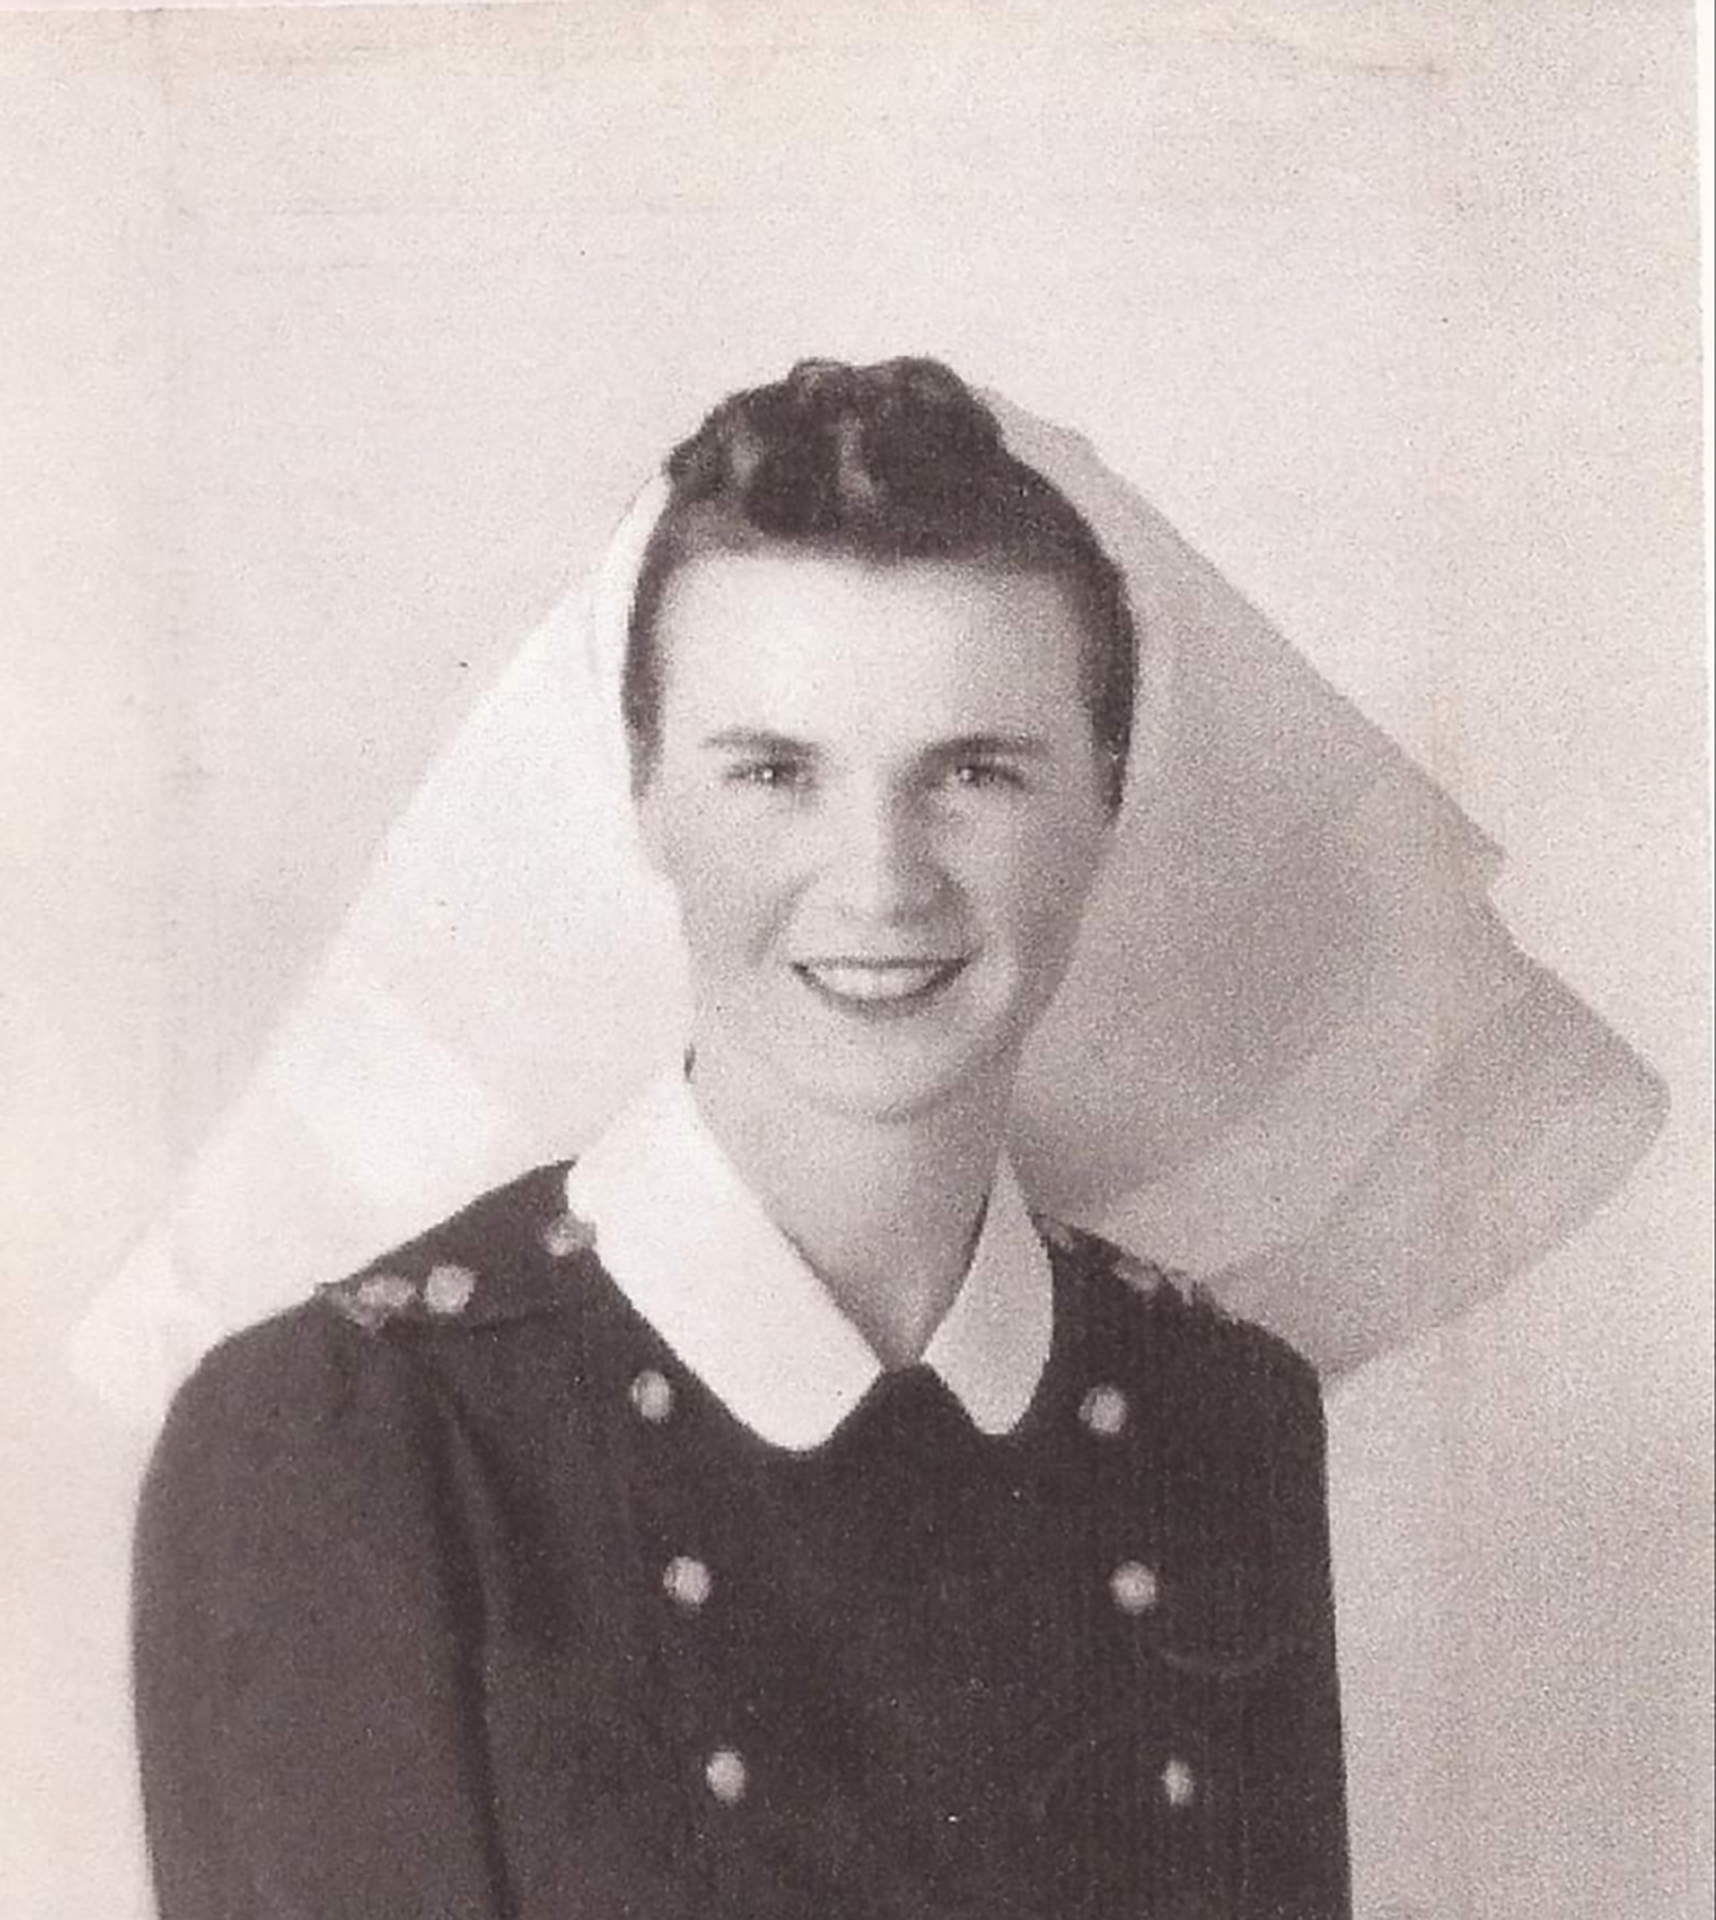 A photo of Ida Crocker in the Canadian military in WWII.